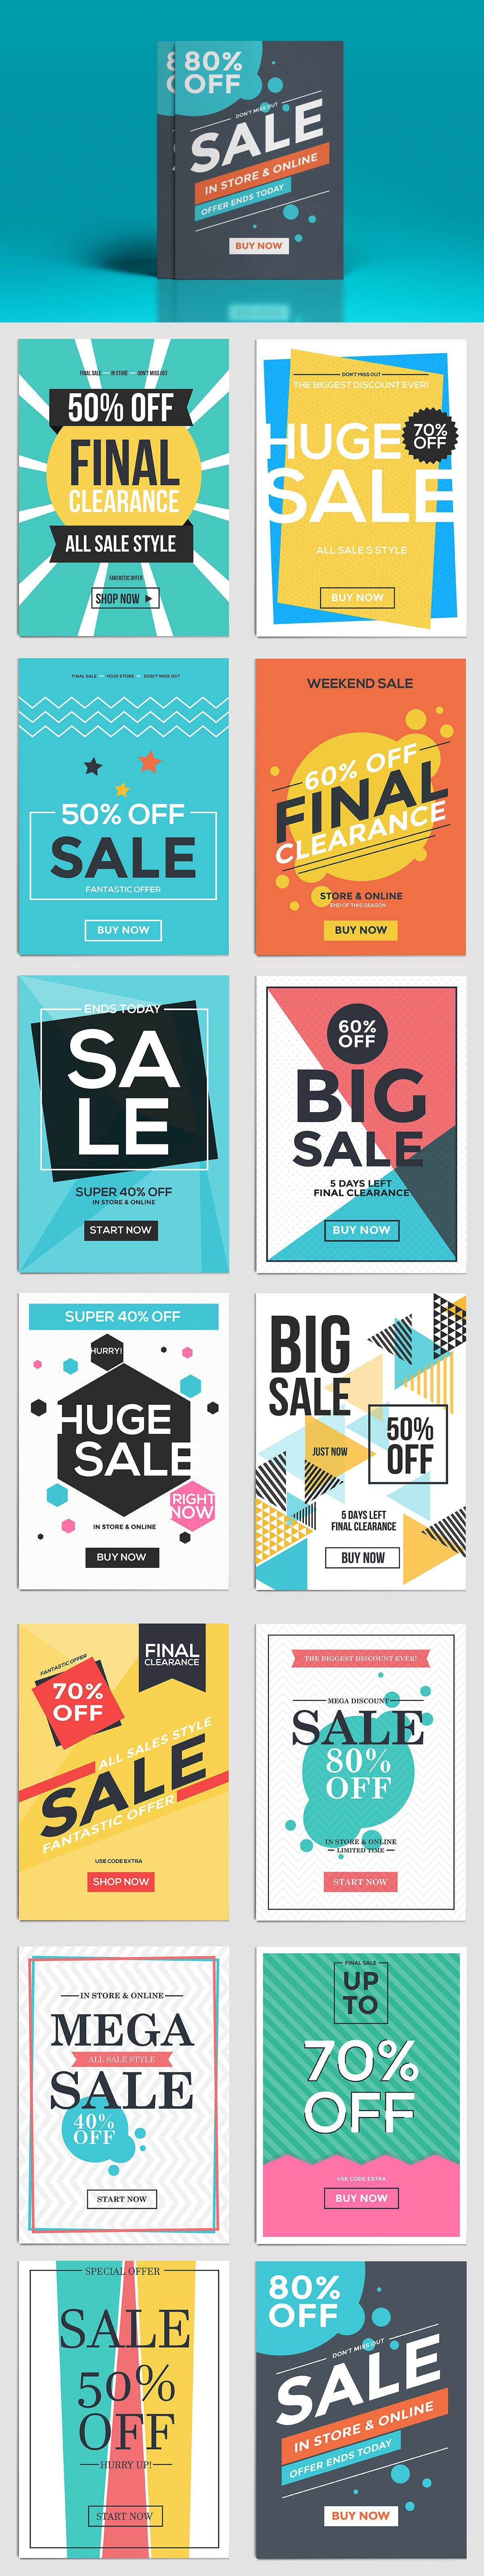 flat design sale flyer template ai eps flyer templates